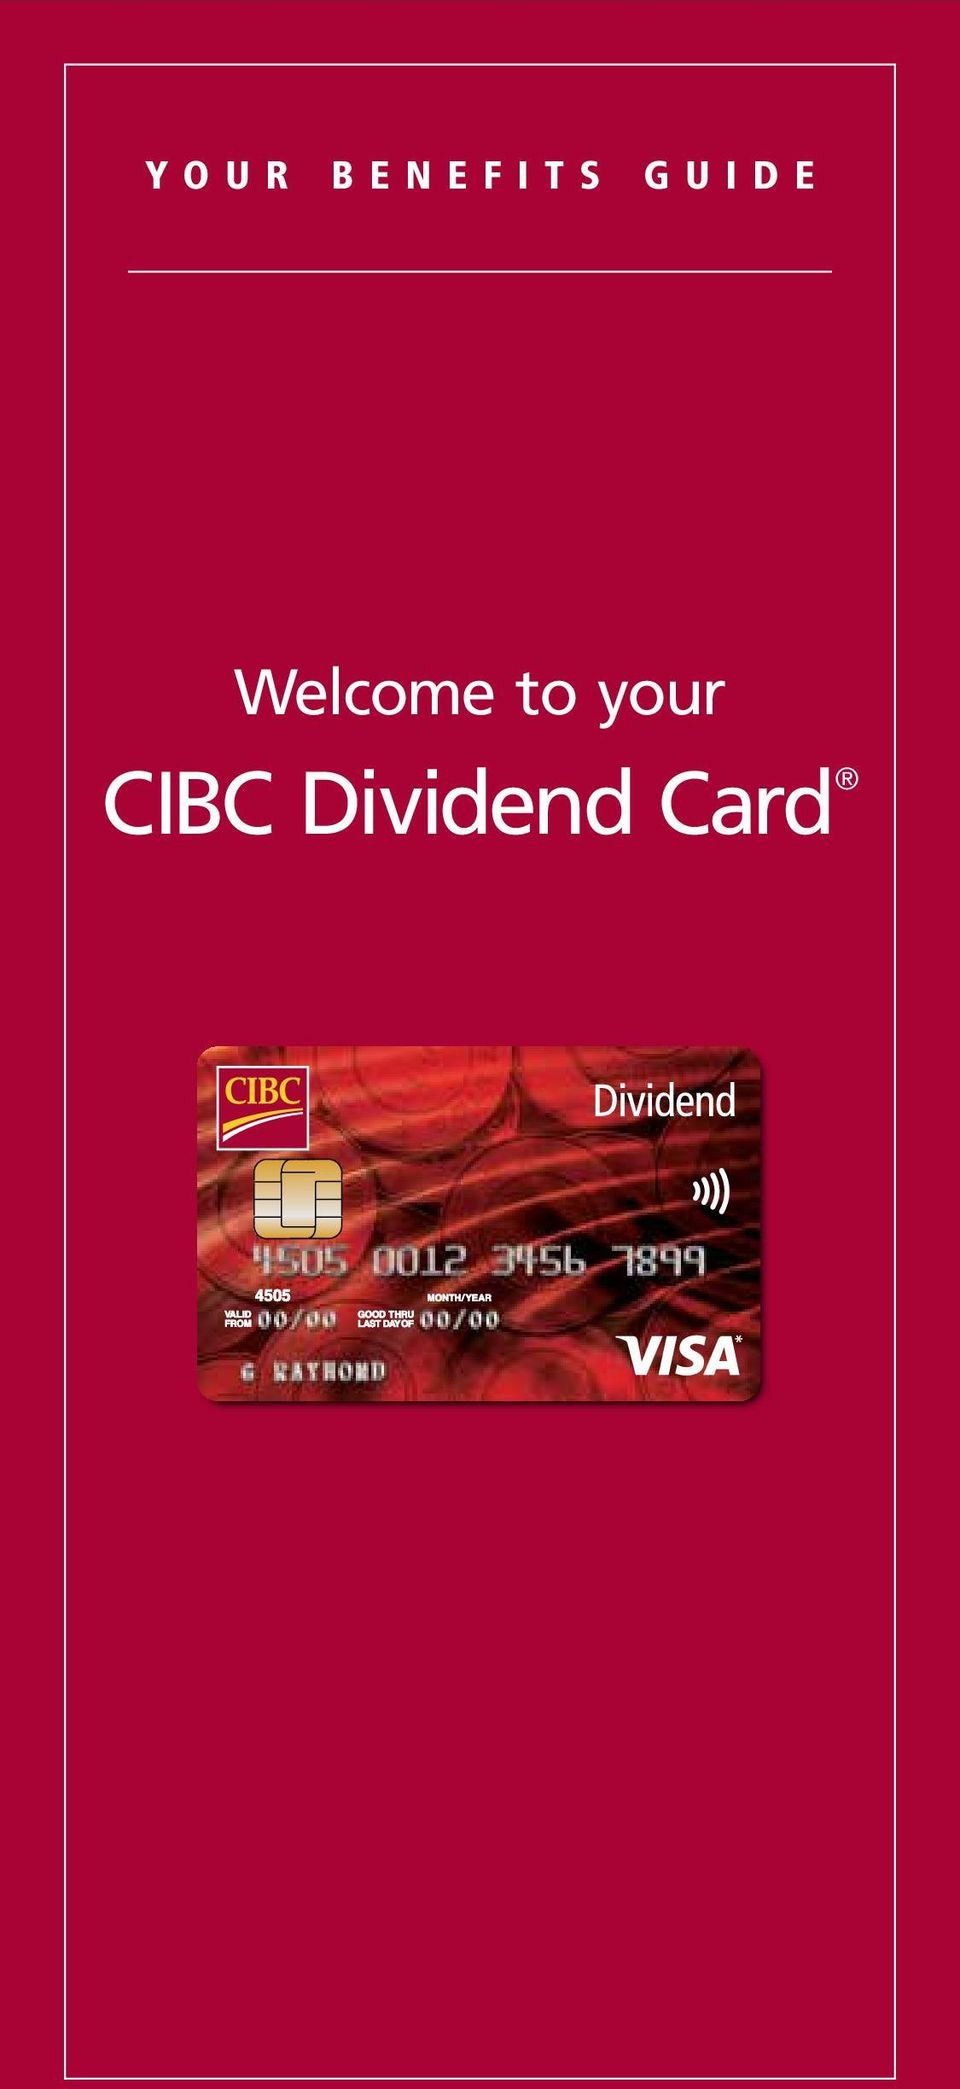 to your CIBC